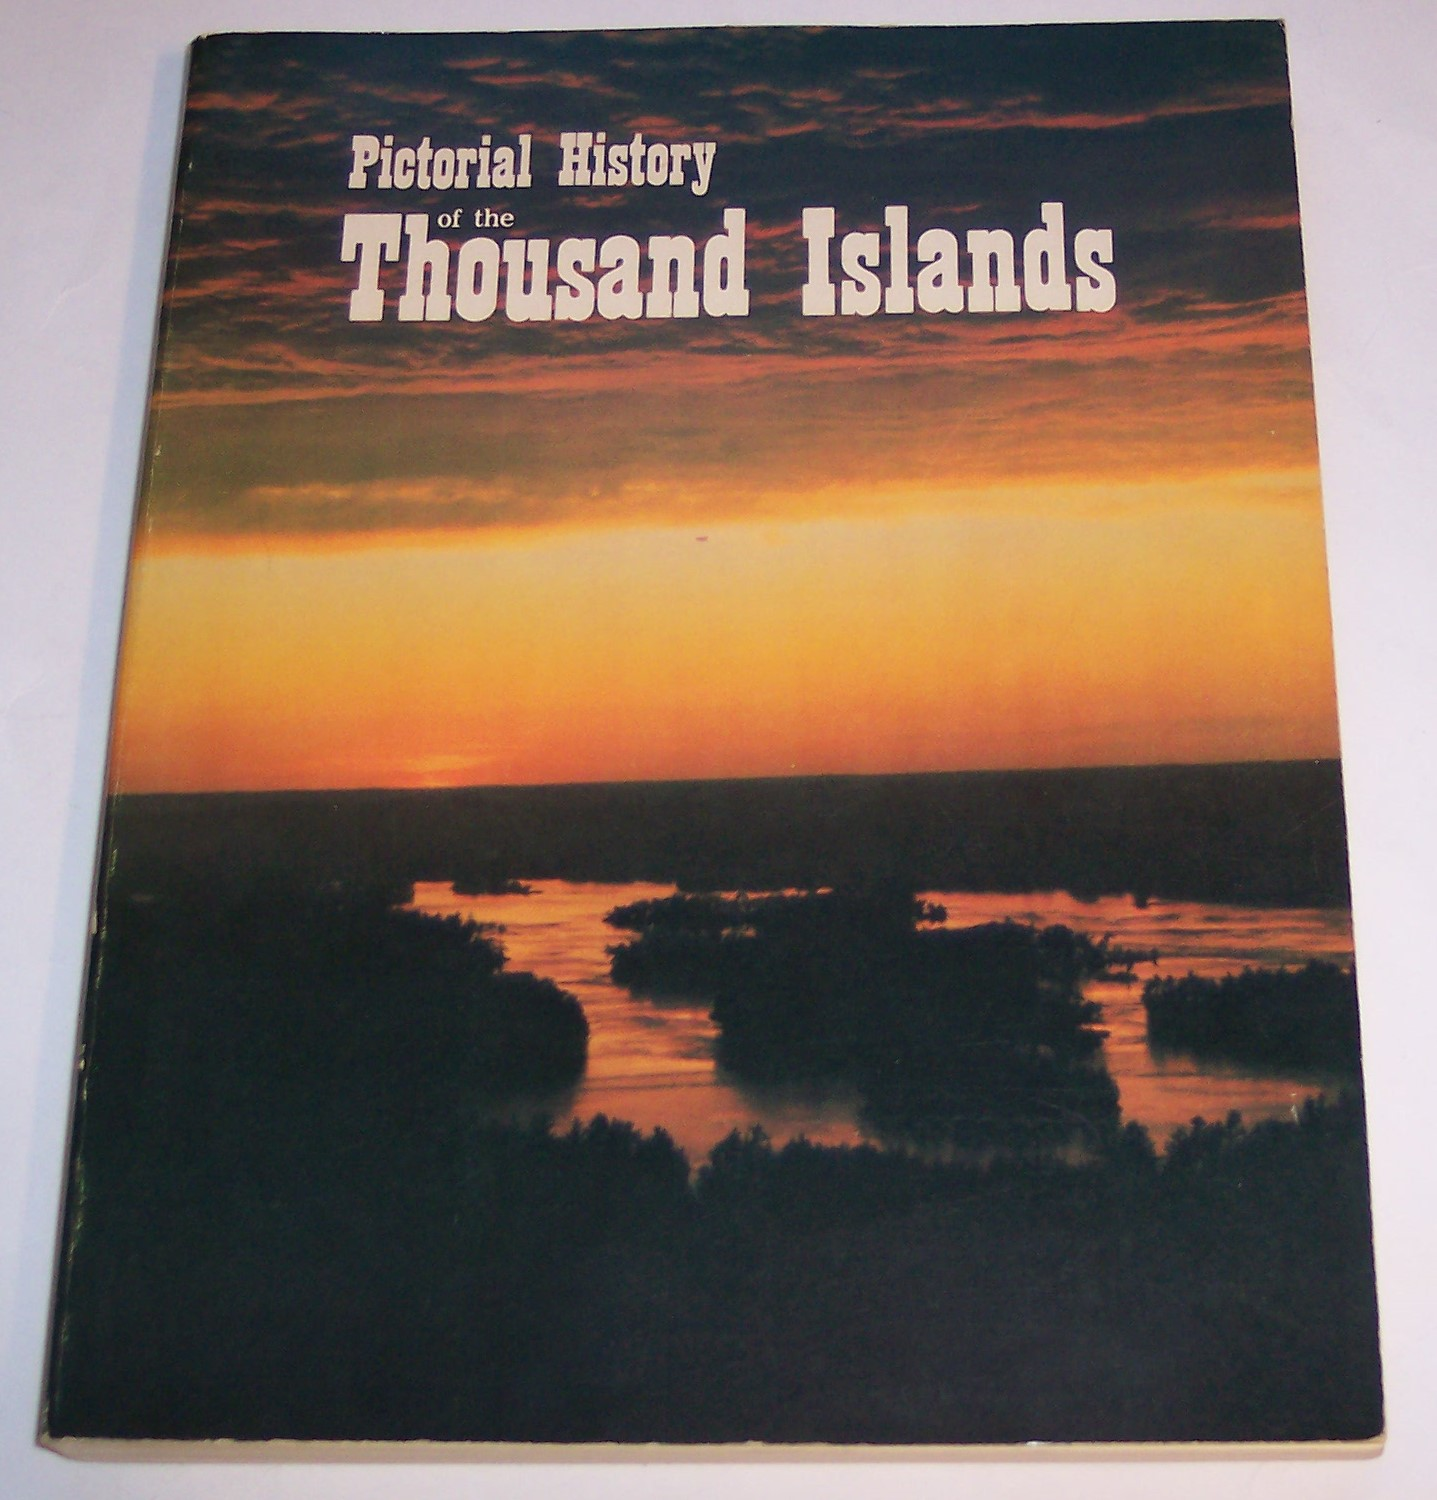 Image for Pictorial History of the Thousand Islands of the St. Lawrence River